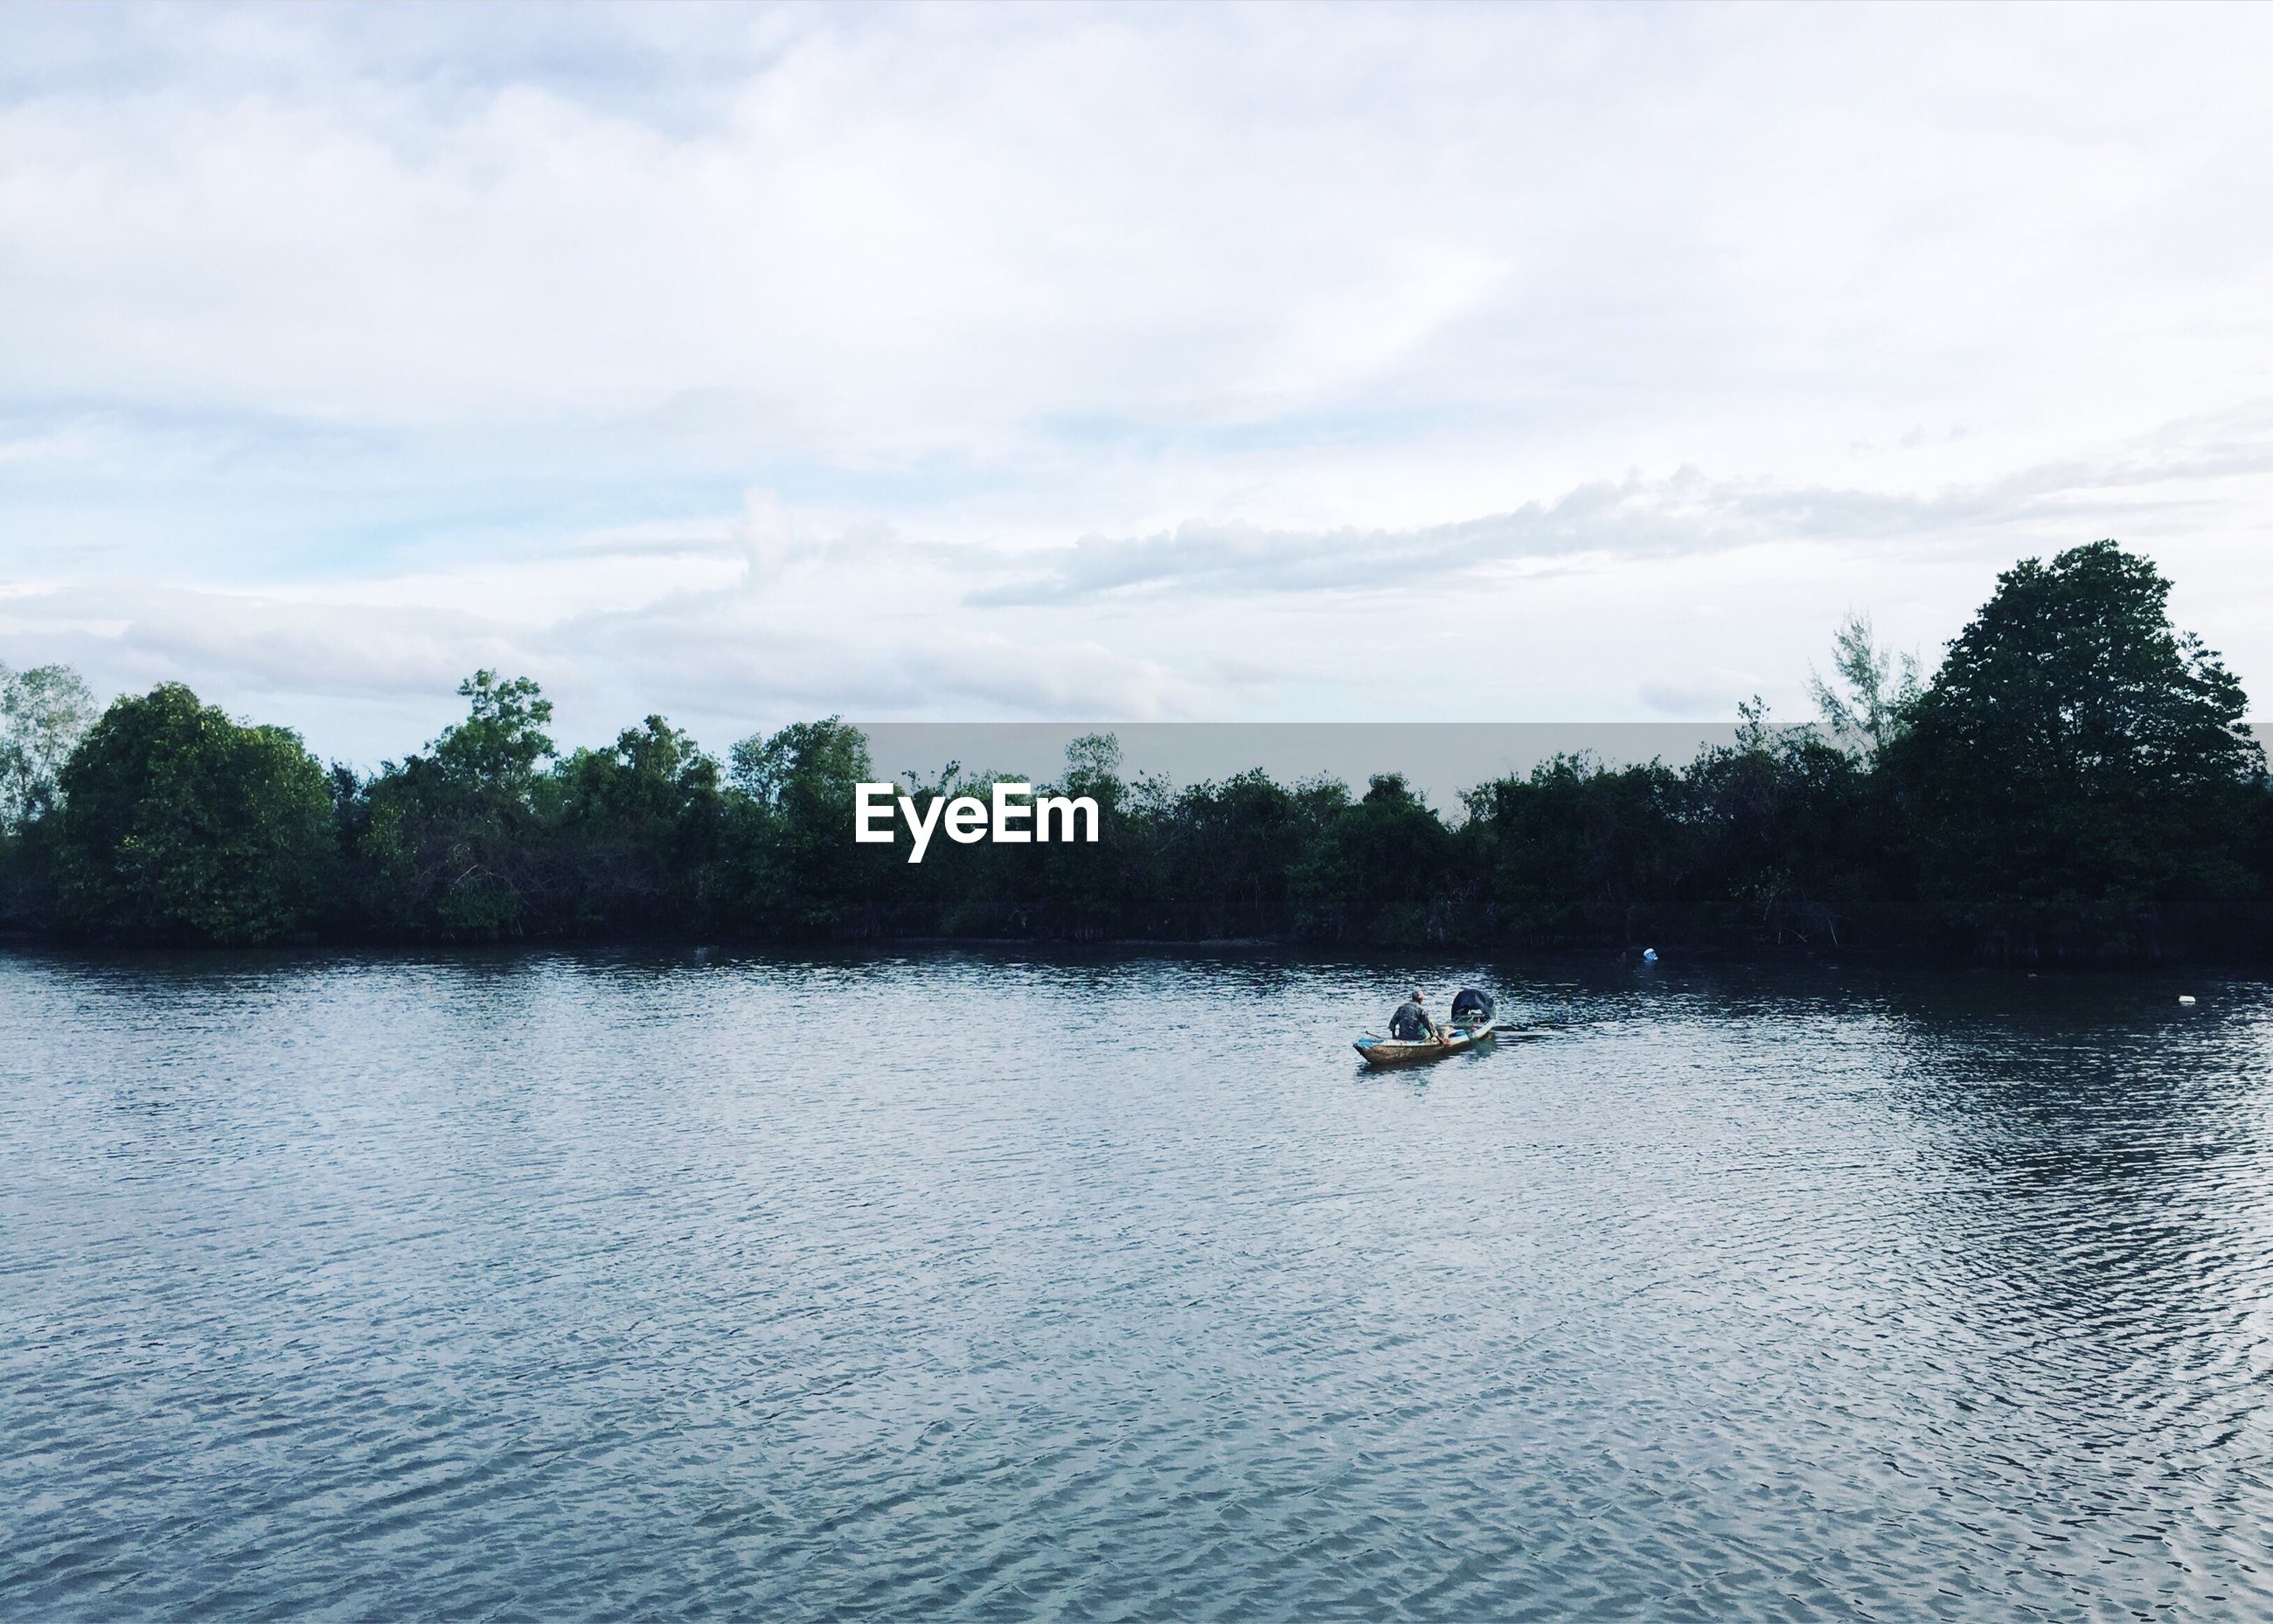 Man sitting on boat in river against cloudy sky